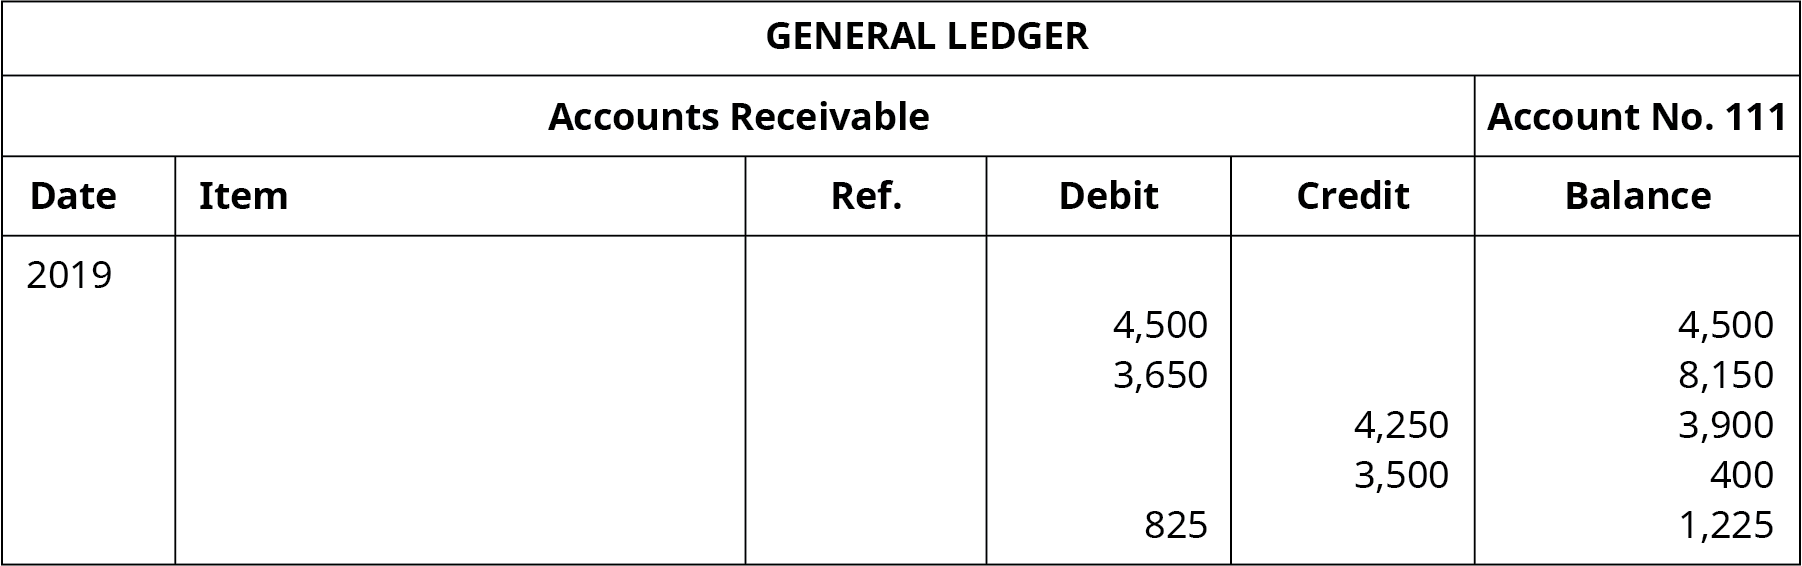 "A General Ledger titled ""Accounts Receivable No. 111"" with six columns. Date: 2019. Six columns labeled left to right: Date, Item, Reference, Debit, Credit, Balance. Debit: 4,500; Balance: 4,500. Debit: 3,650; Balance: 8,150. Credit: 4,250; Balance: 3,900. Credit: 3,500; Balance: 400. Debit: 825; Balance: 1,225."